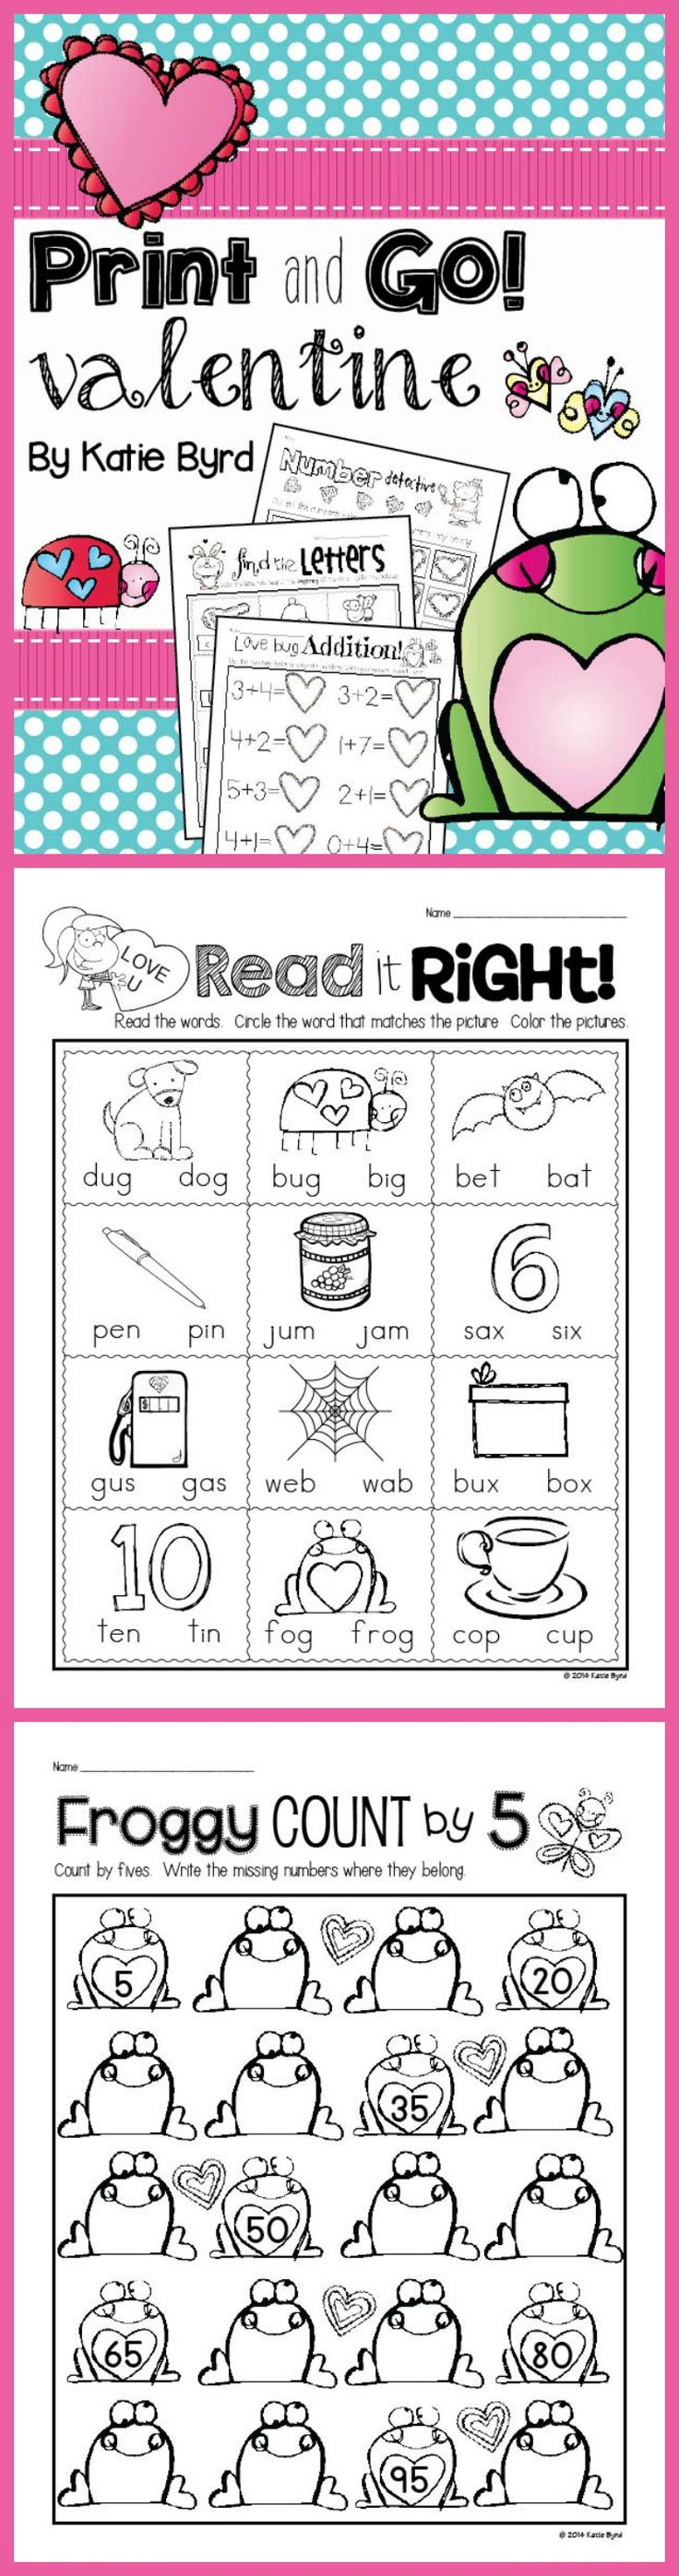 Print and Go! Valentine Math and Literacy (NO PREP) - lots of great practice pages to save your ink and time. Perfect for morning work, homework, or independent centers. Happy Valentine's Day! Happy teaching! $